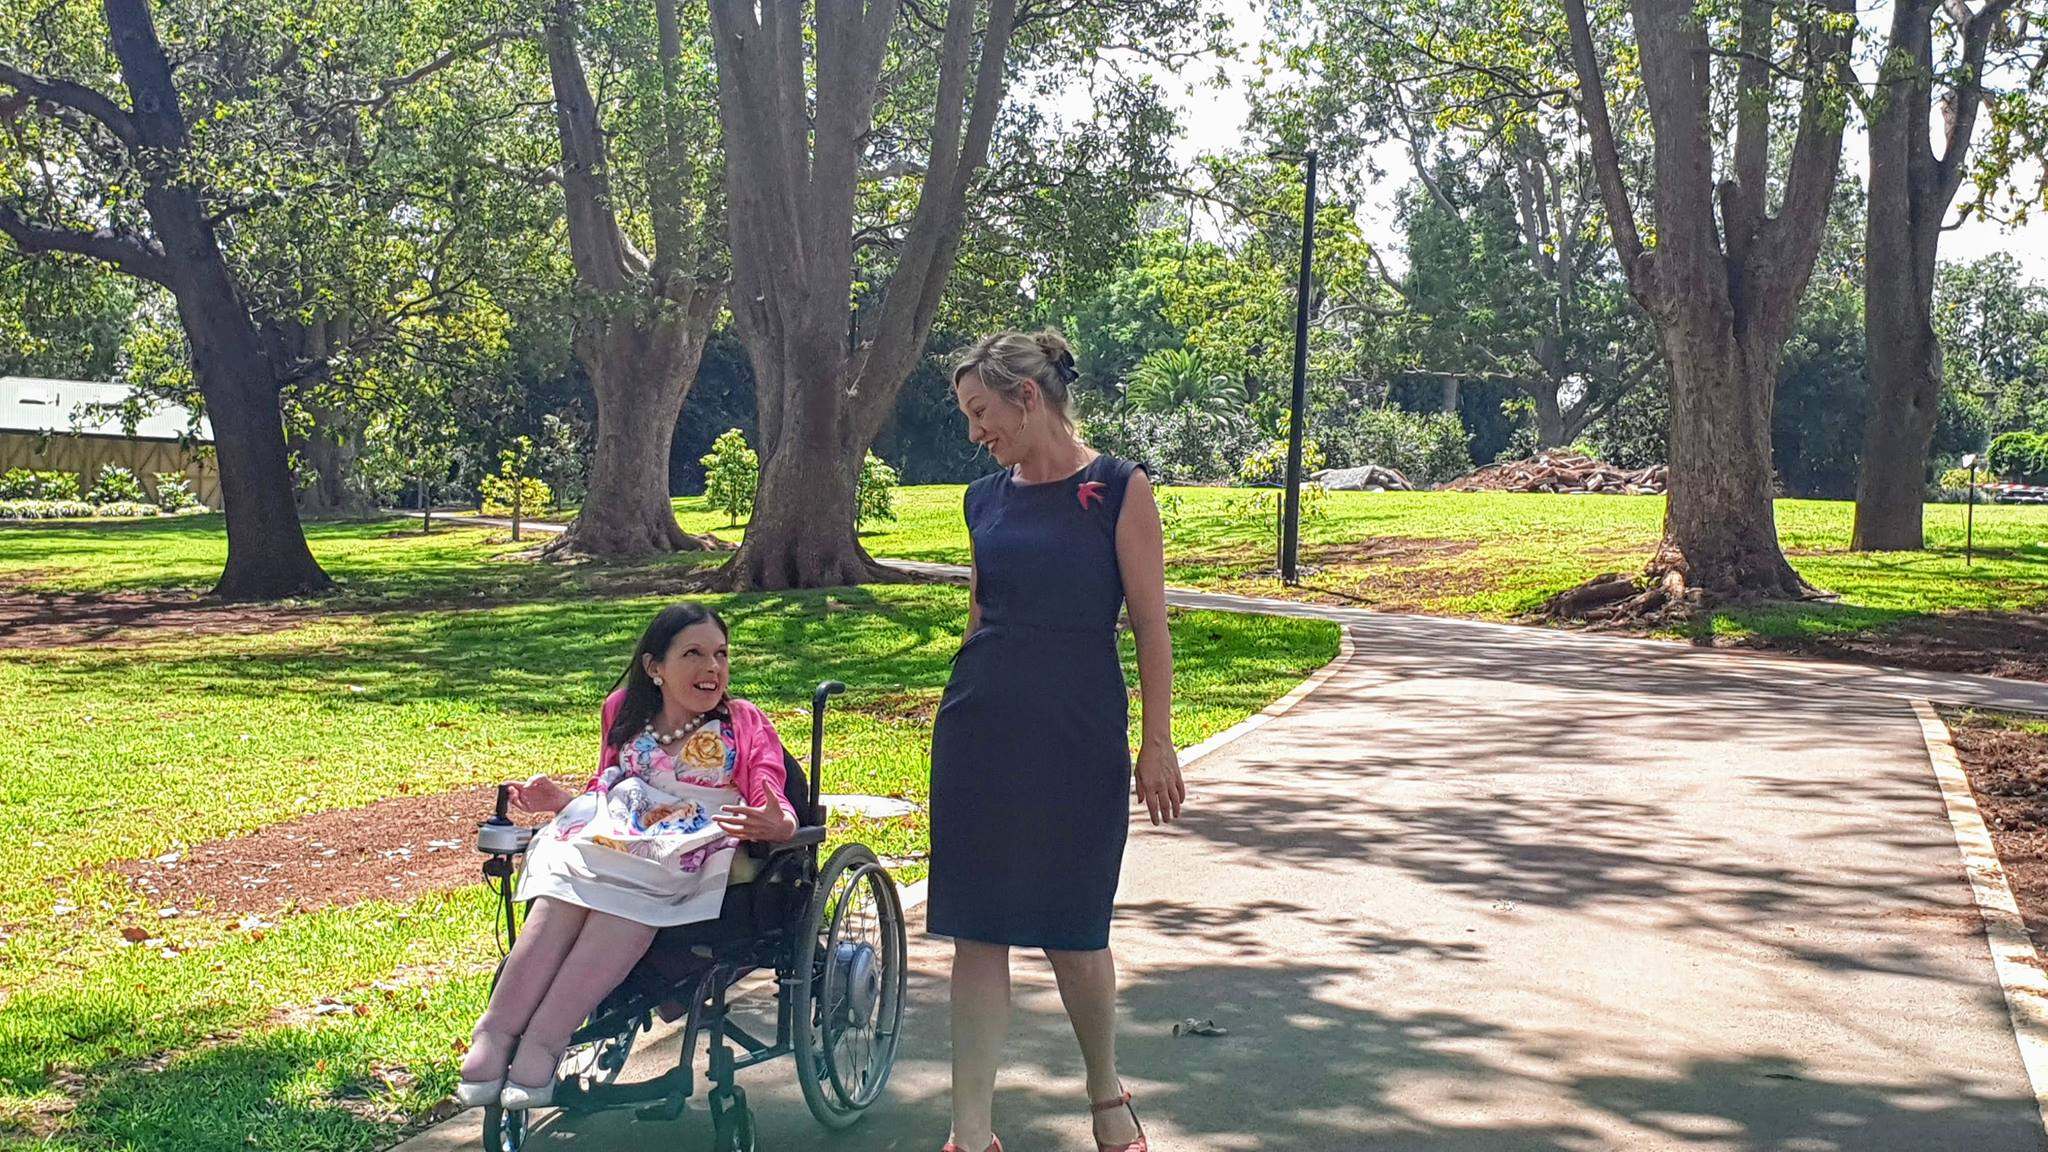 Alyce Nelligan, candidate for Toowoomba Regional Council with Senator Larissa Waters